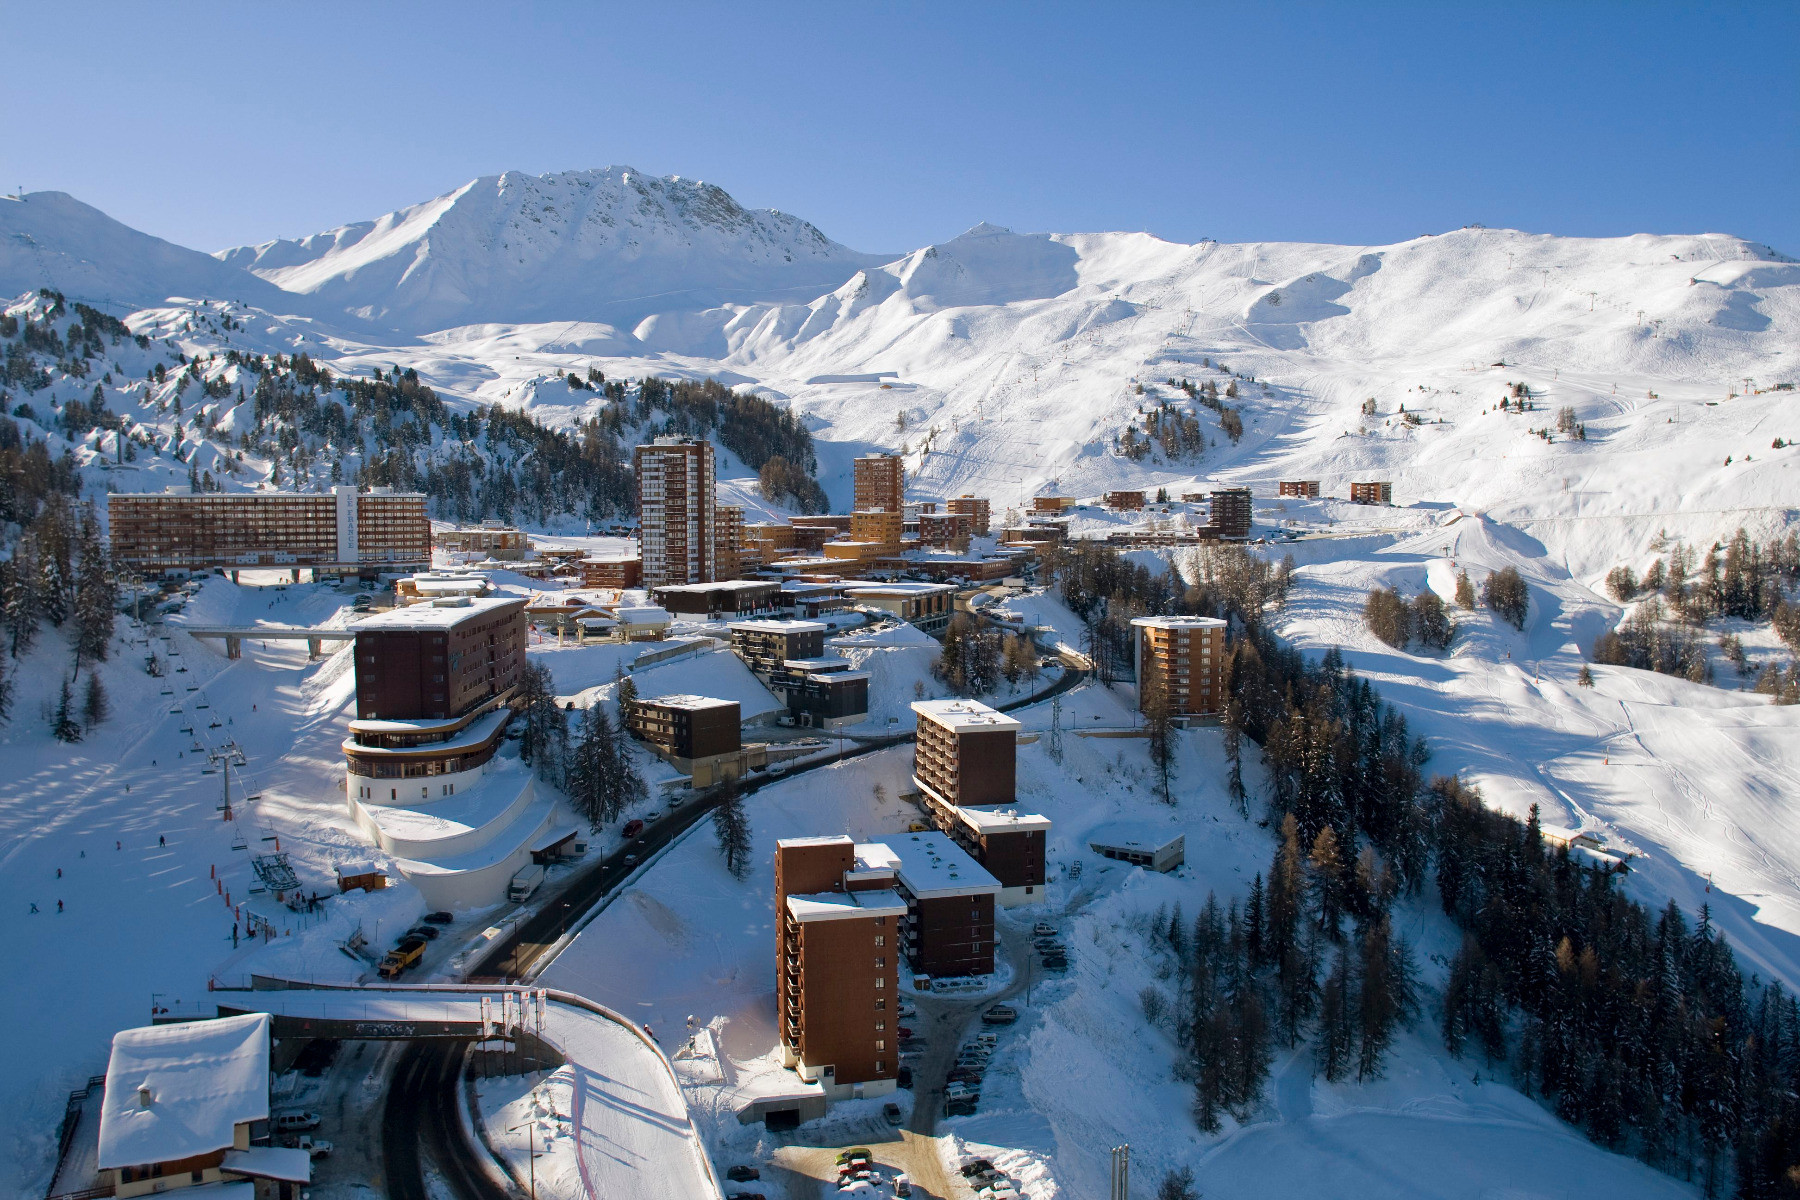 La Plagne Centre, France. undefined